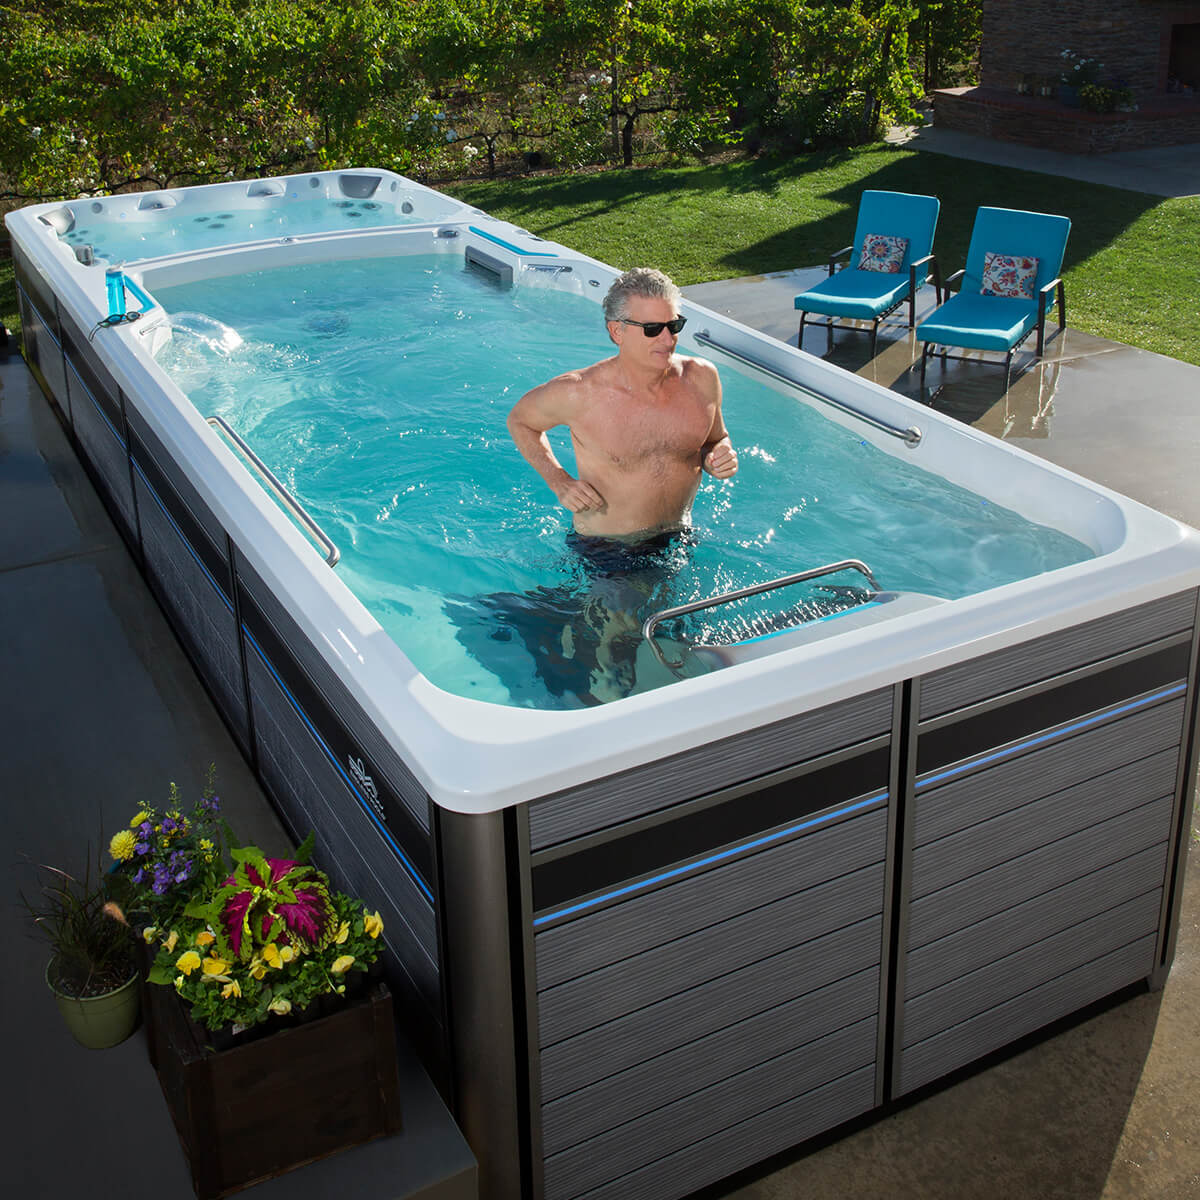 Jacuzzi Endless Pool 1200x1200 Endless Pools E2000 Treadmill Gallery Jj Pool Spa